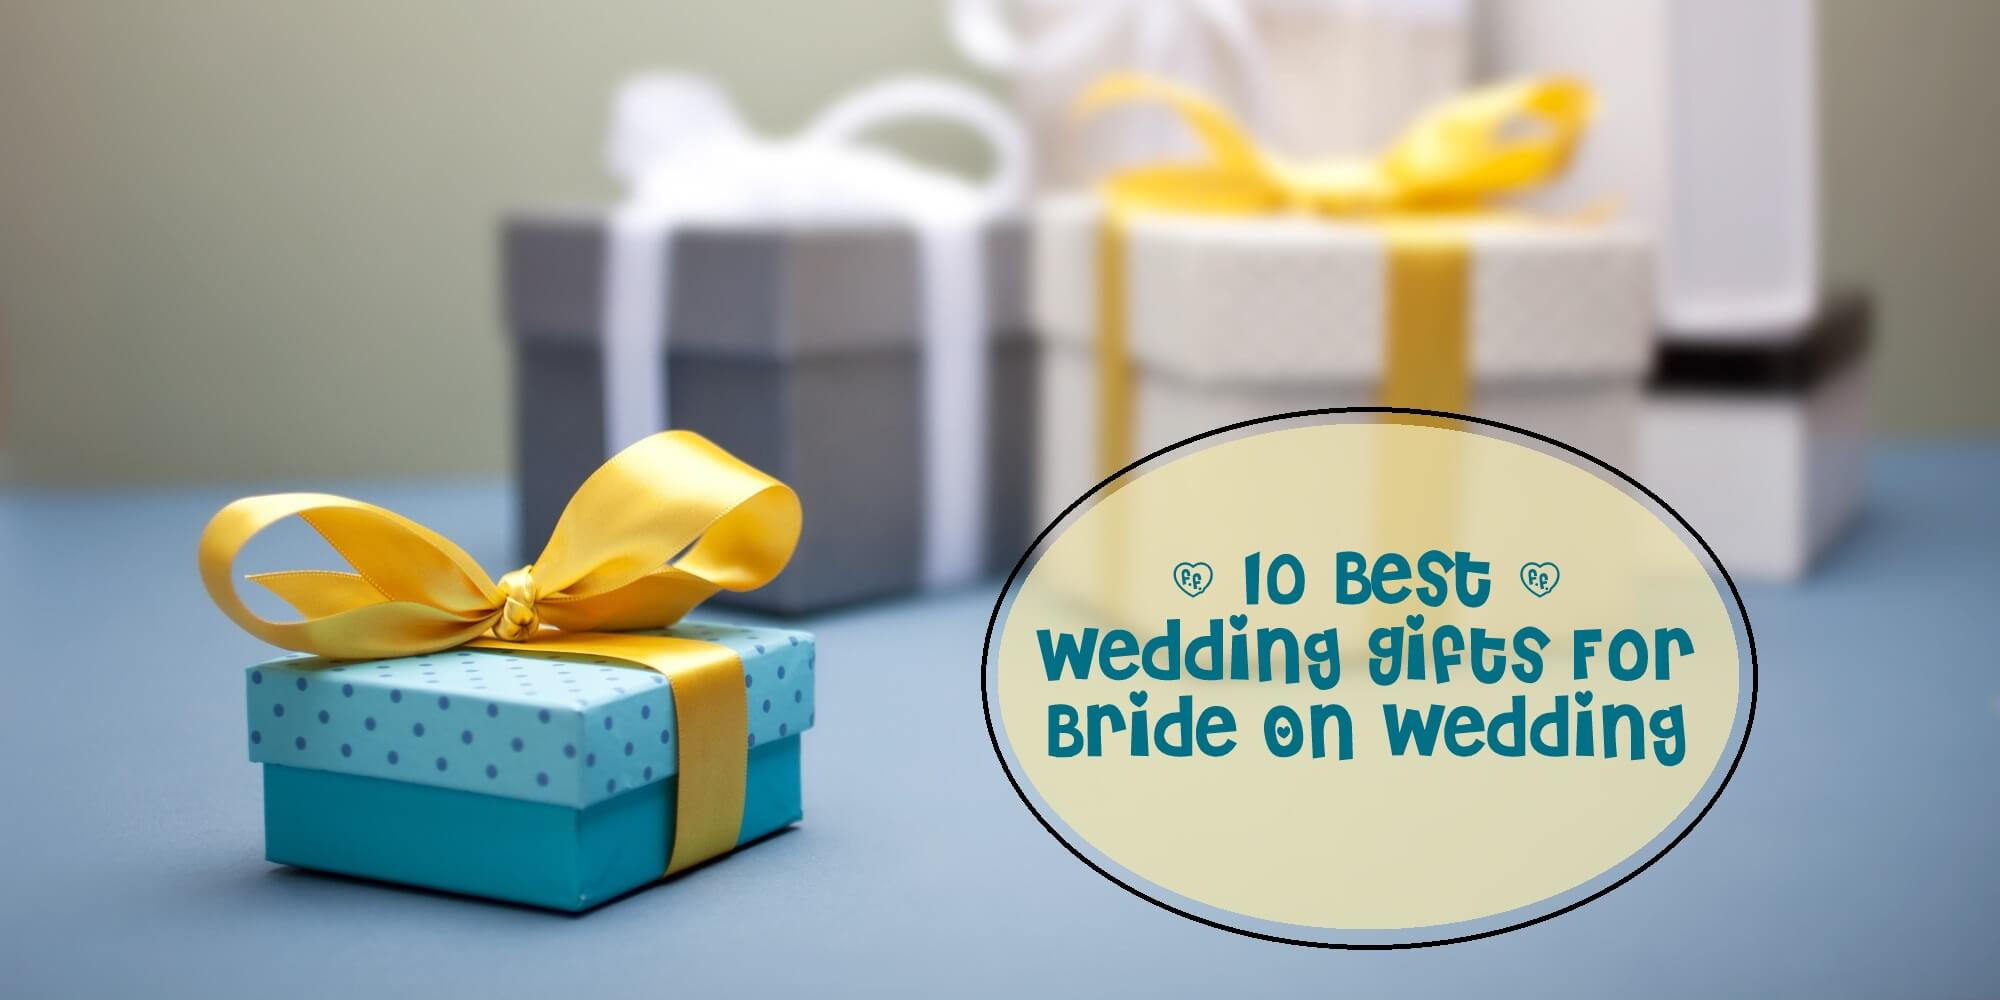 Best Wedding Gifts Ever.10 Best Wedding Gifts For Bride On Wedding Shaadidukaan